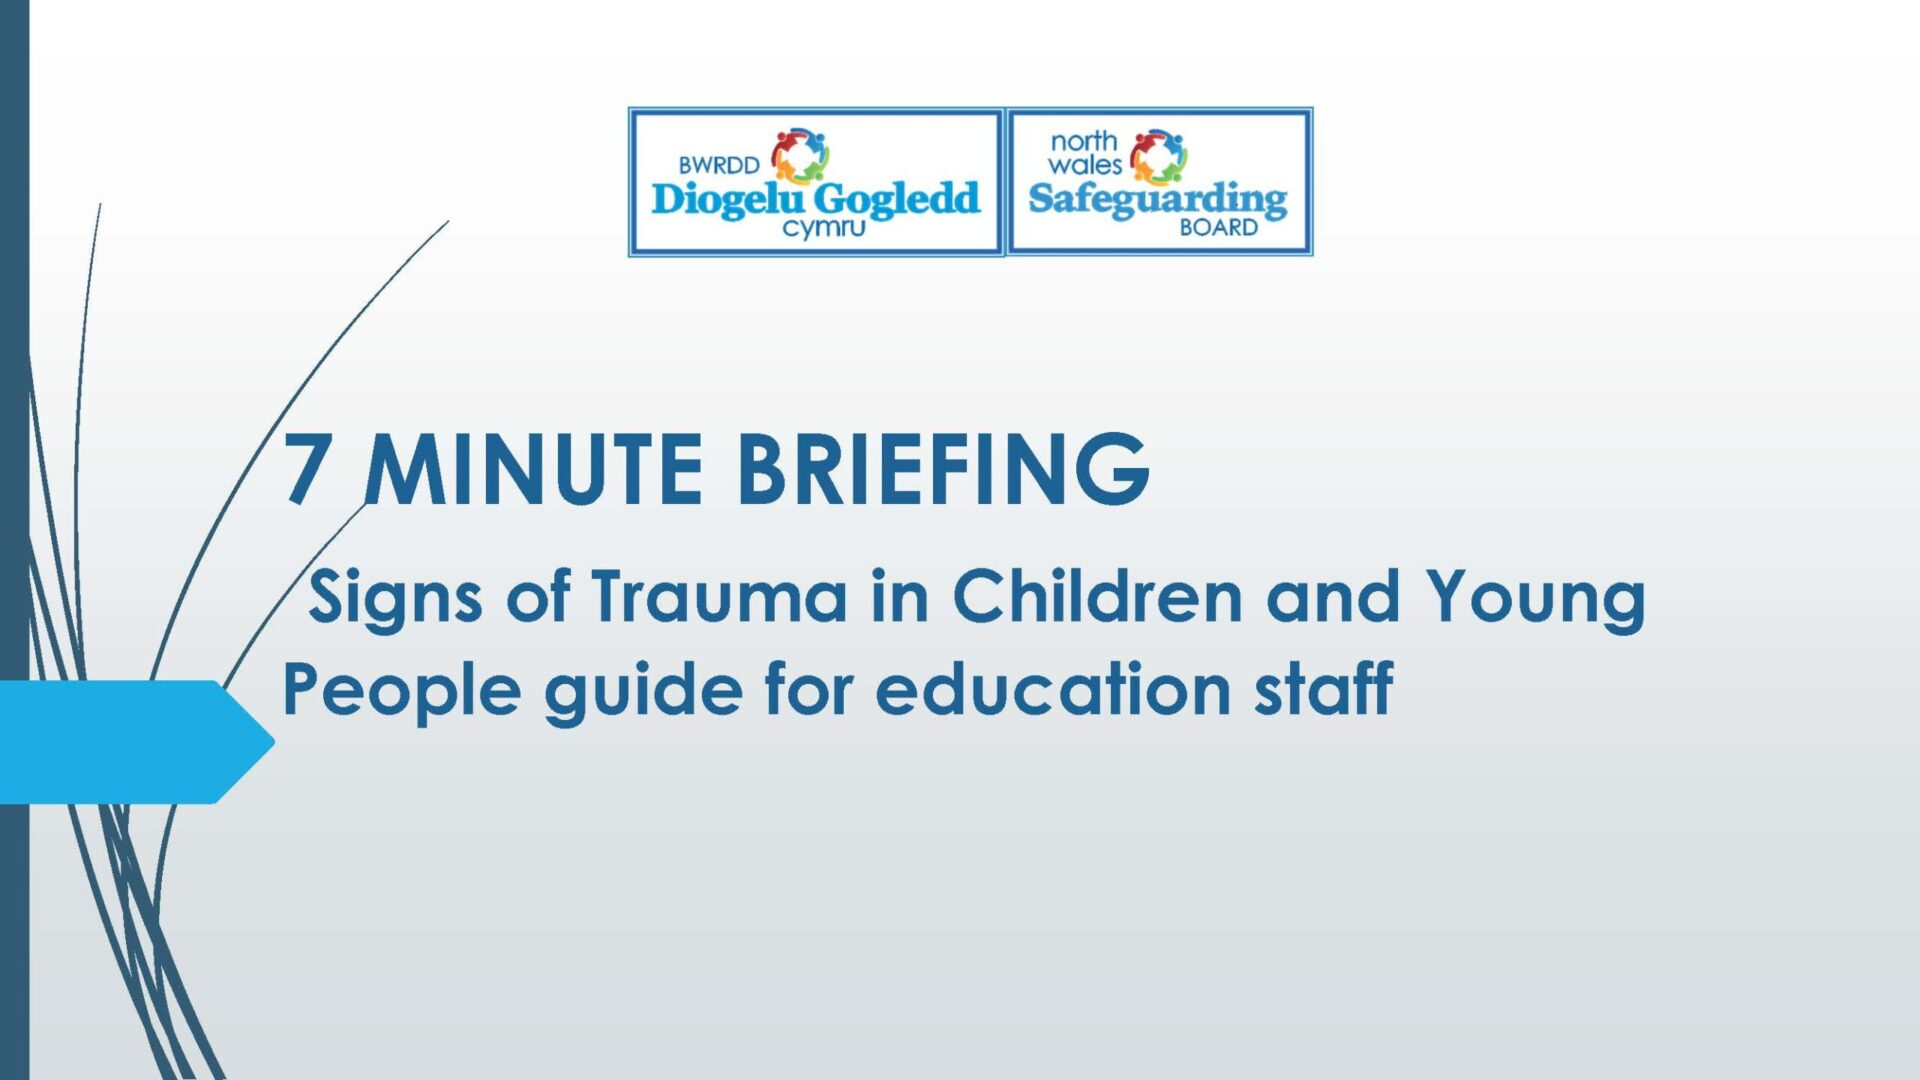 Signs of trauma in Children and Young People guide for Education Staff